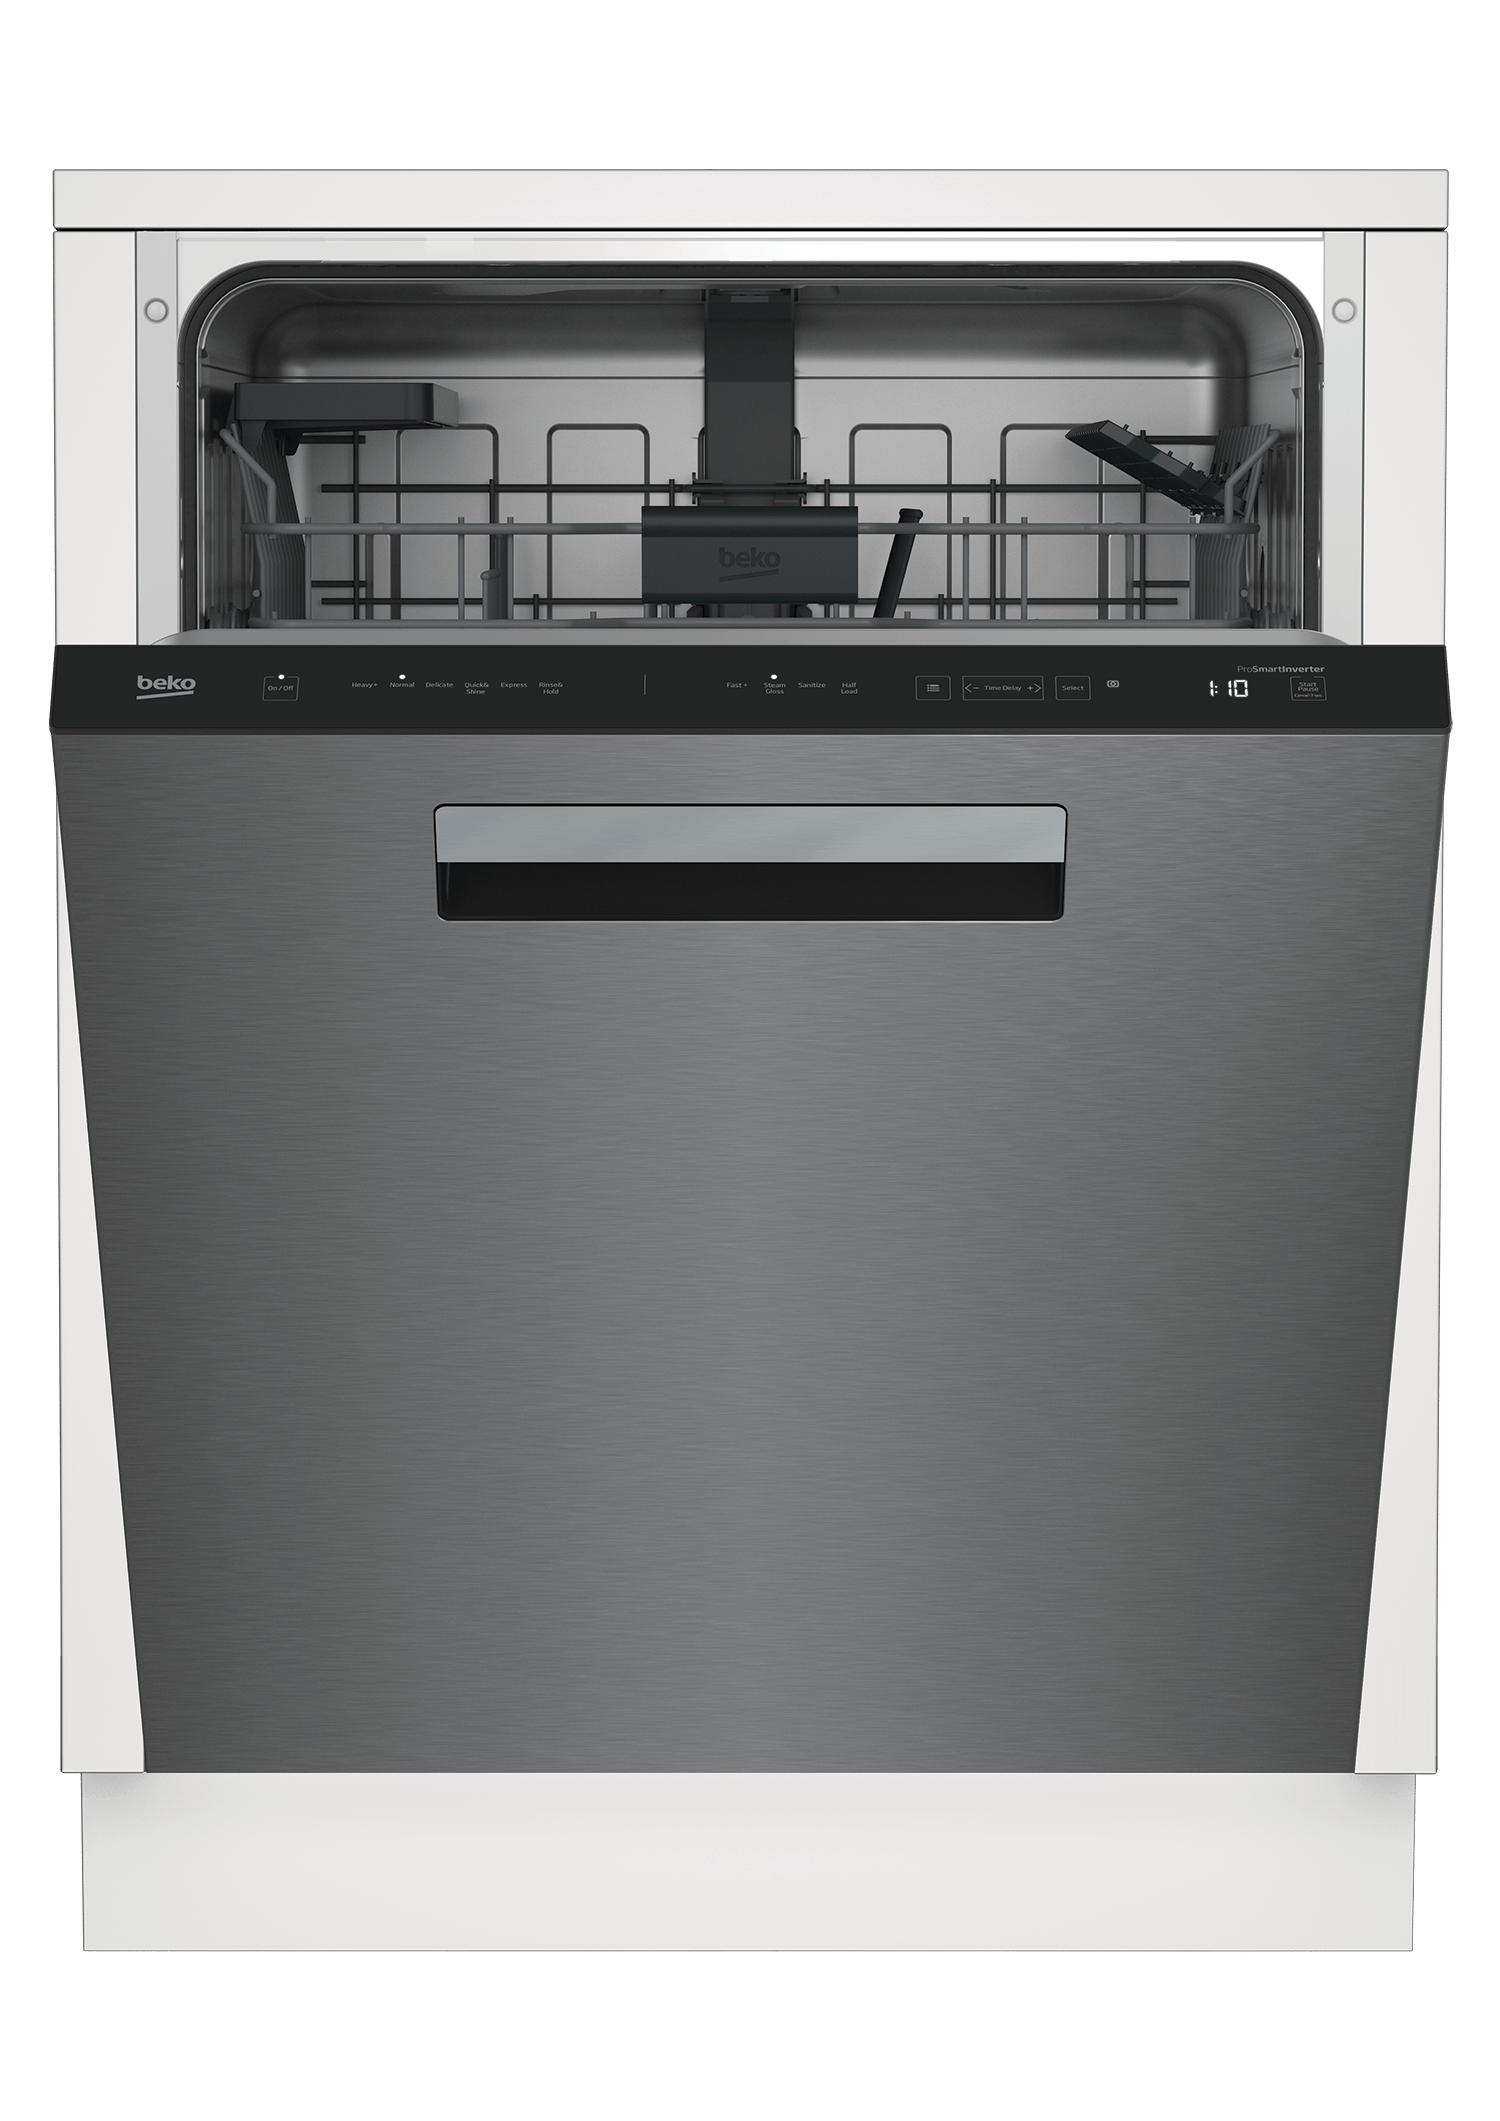 Tall Tub Stainless Dishwasher, 14 place settings, 45 dBa, Top Control with Pocket Handle